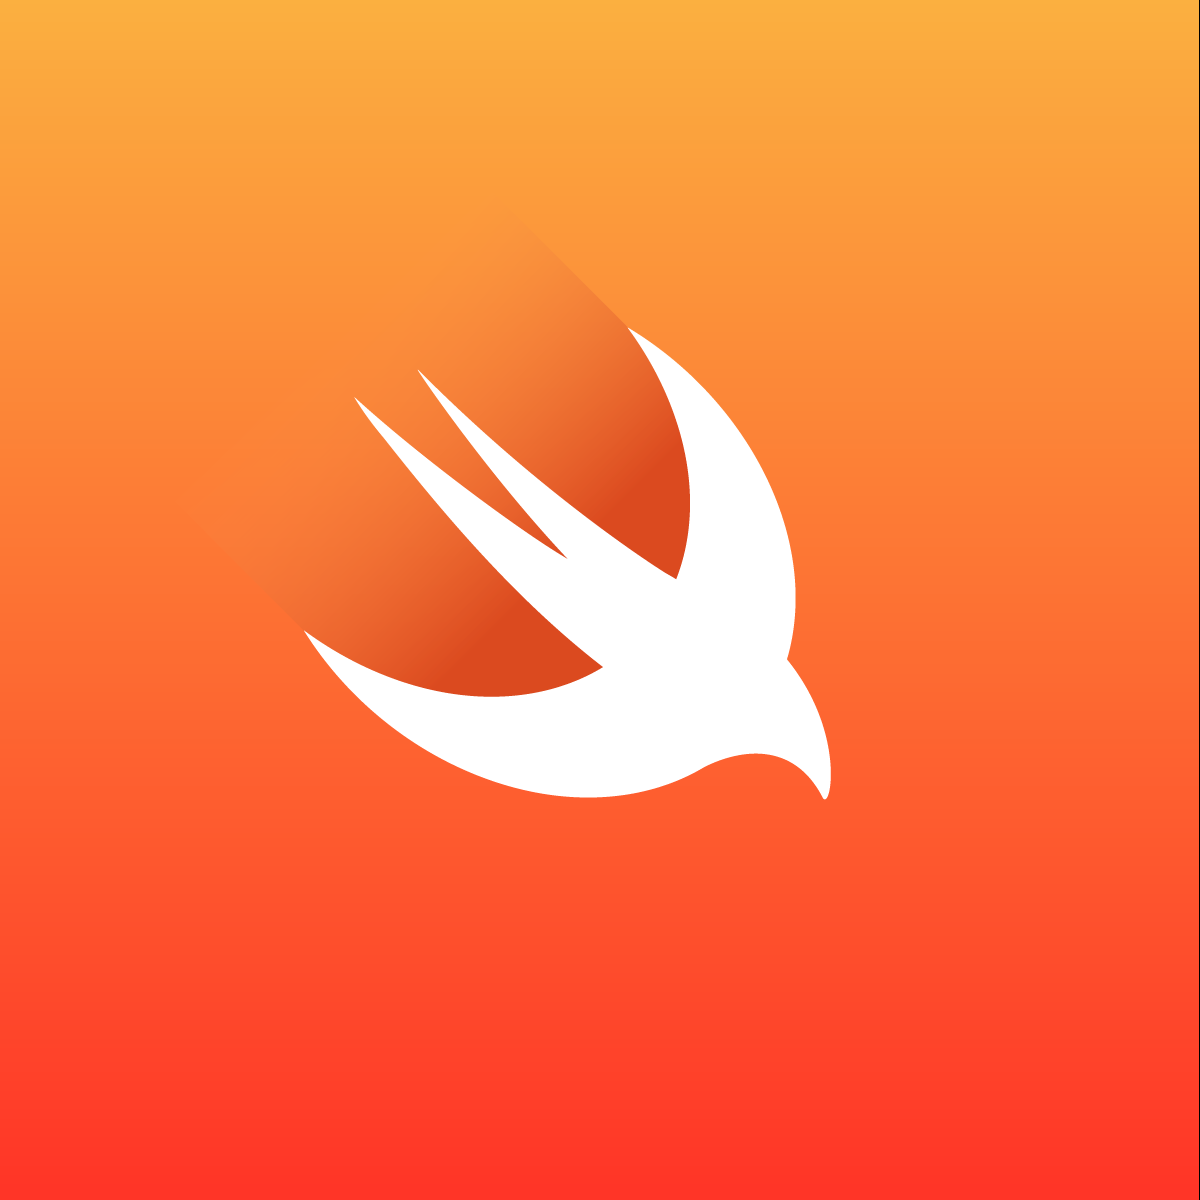 iOS Development with Swift/Objective-C